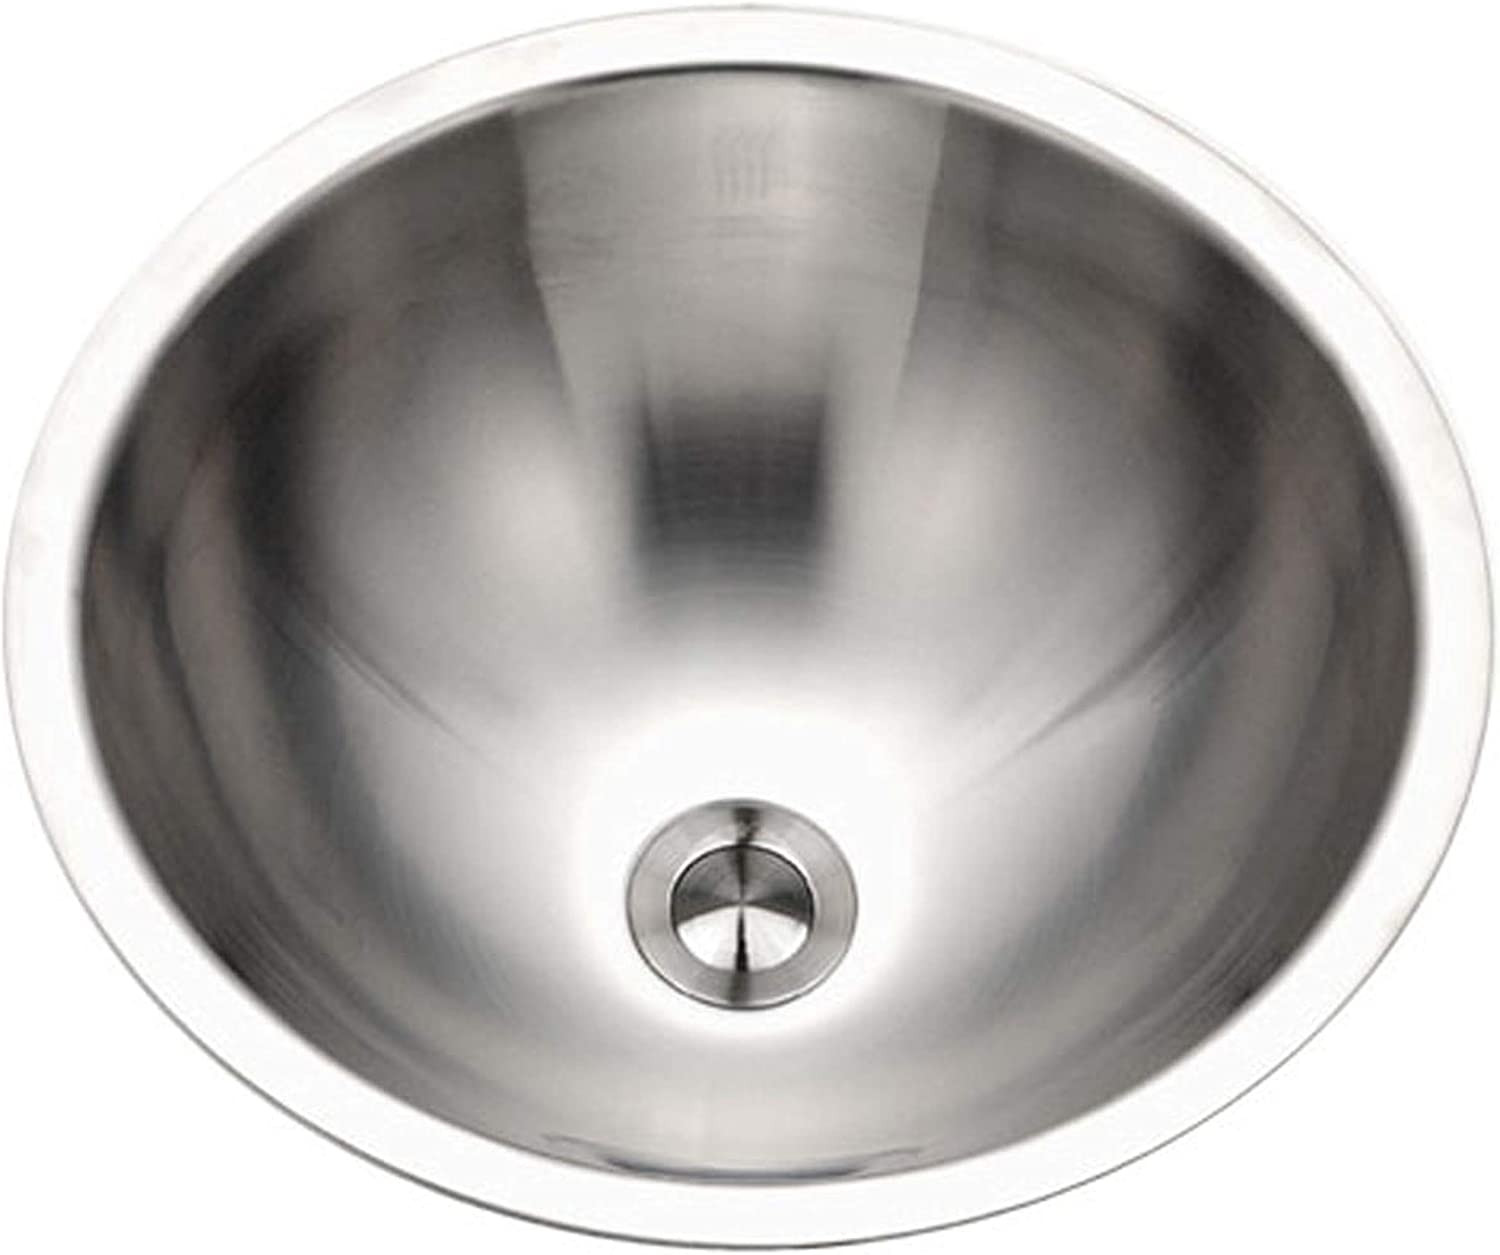 Houzer CRO-1620-1 Opus Max 51% OFF Series Undermount Ranking TOP7 Stainless Conical Steel